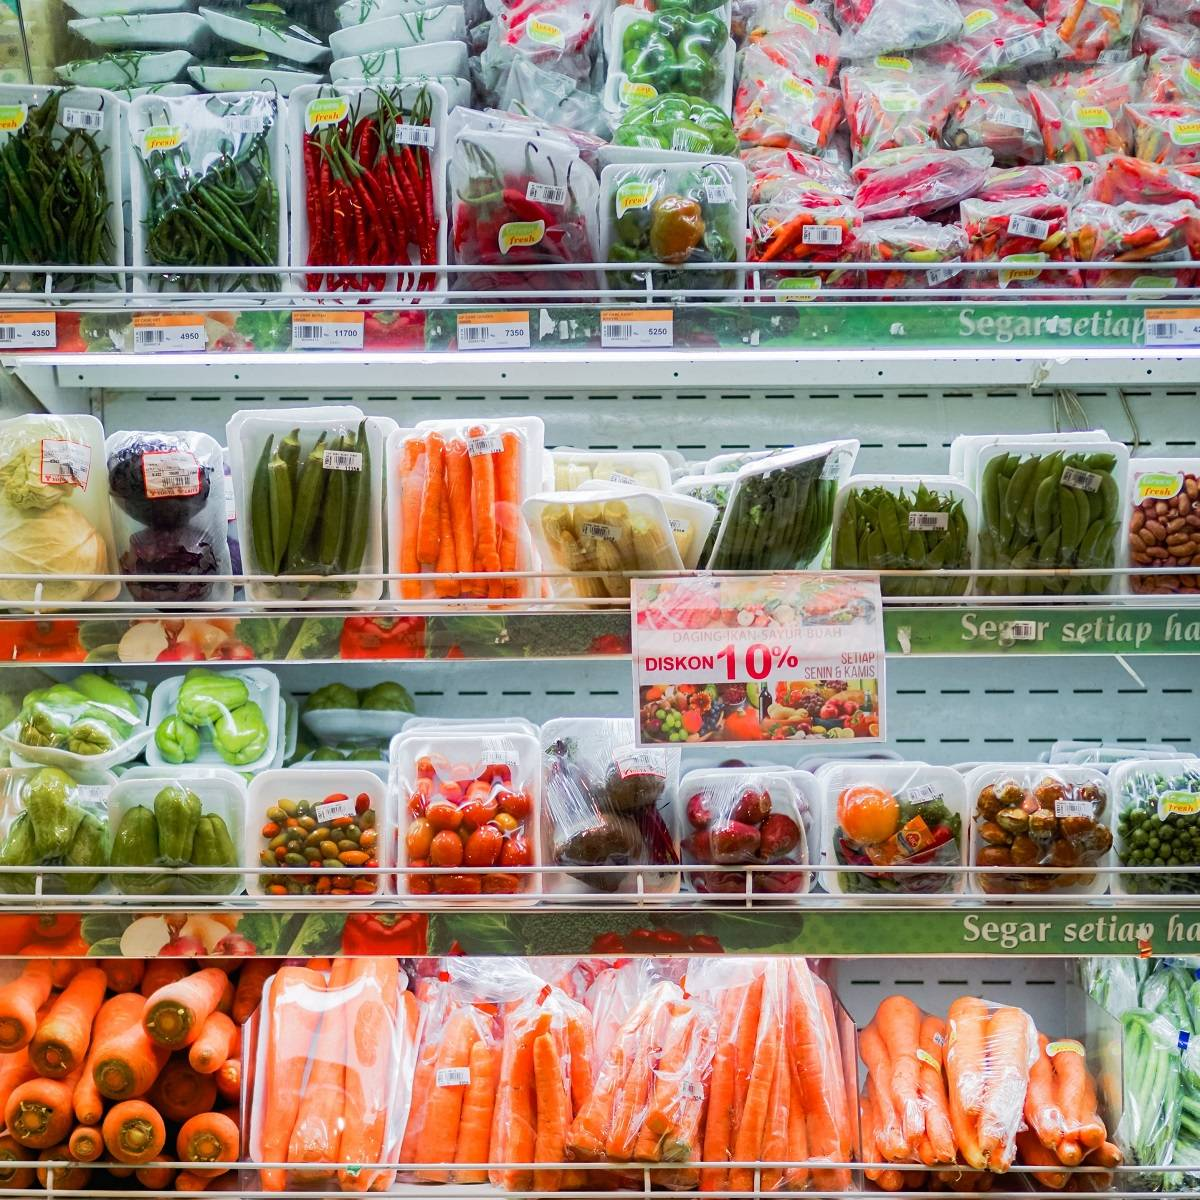 Shelves of vegetables wrapped in plastic packaging in a supermarket